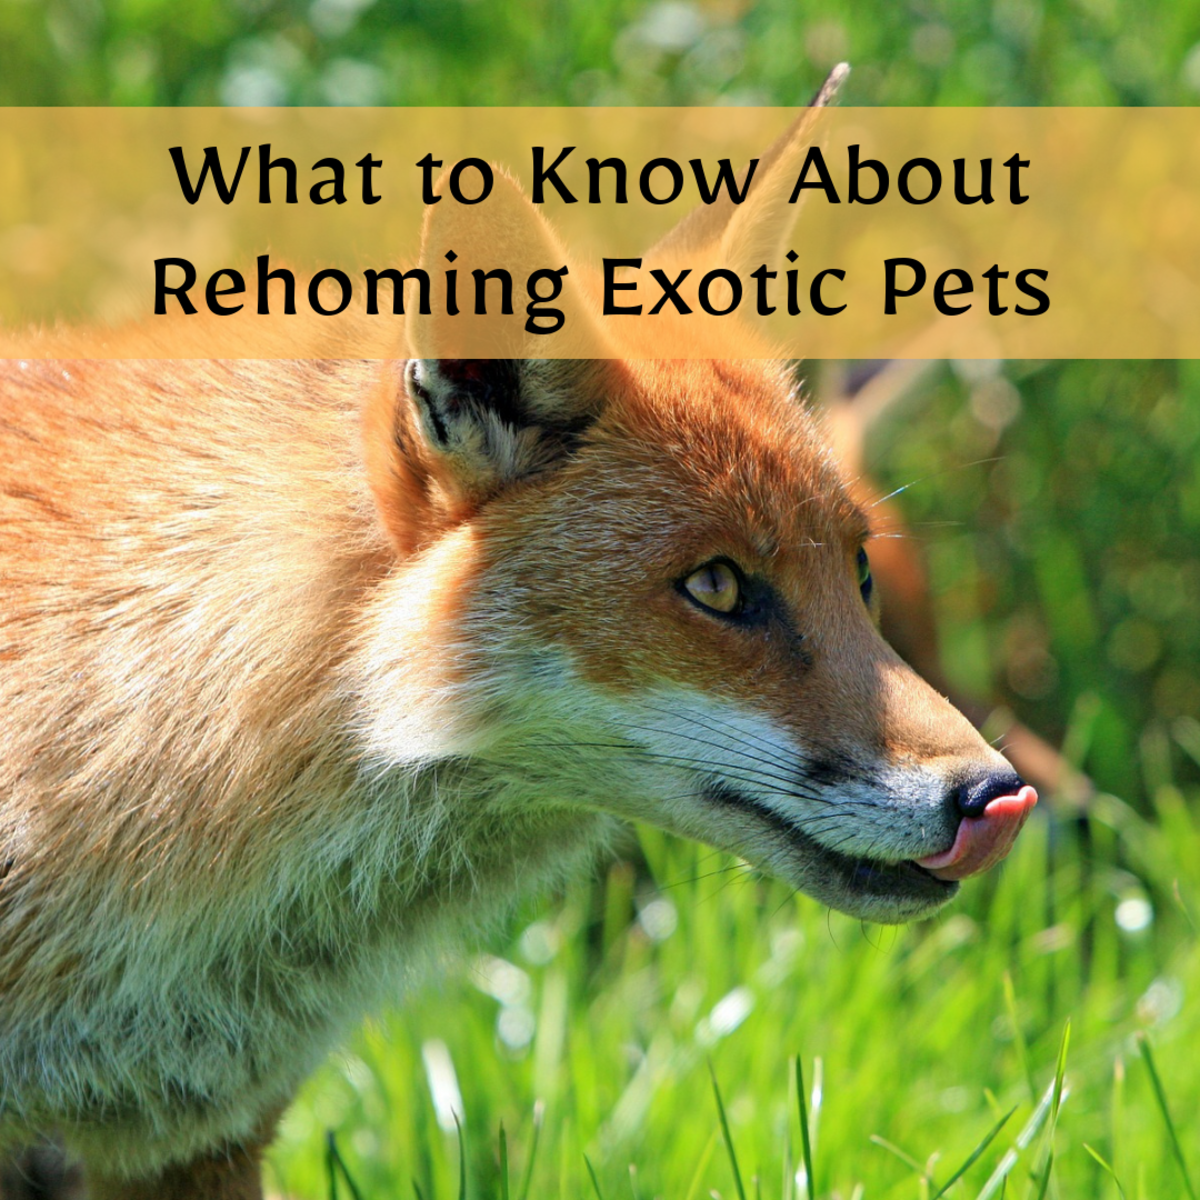 A rehomed exotic pet may seem like a good, inexpensive option, but these pets require experienced owners.